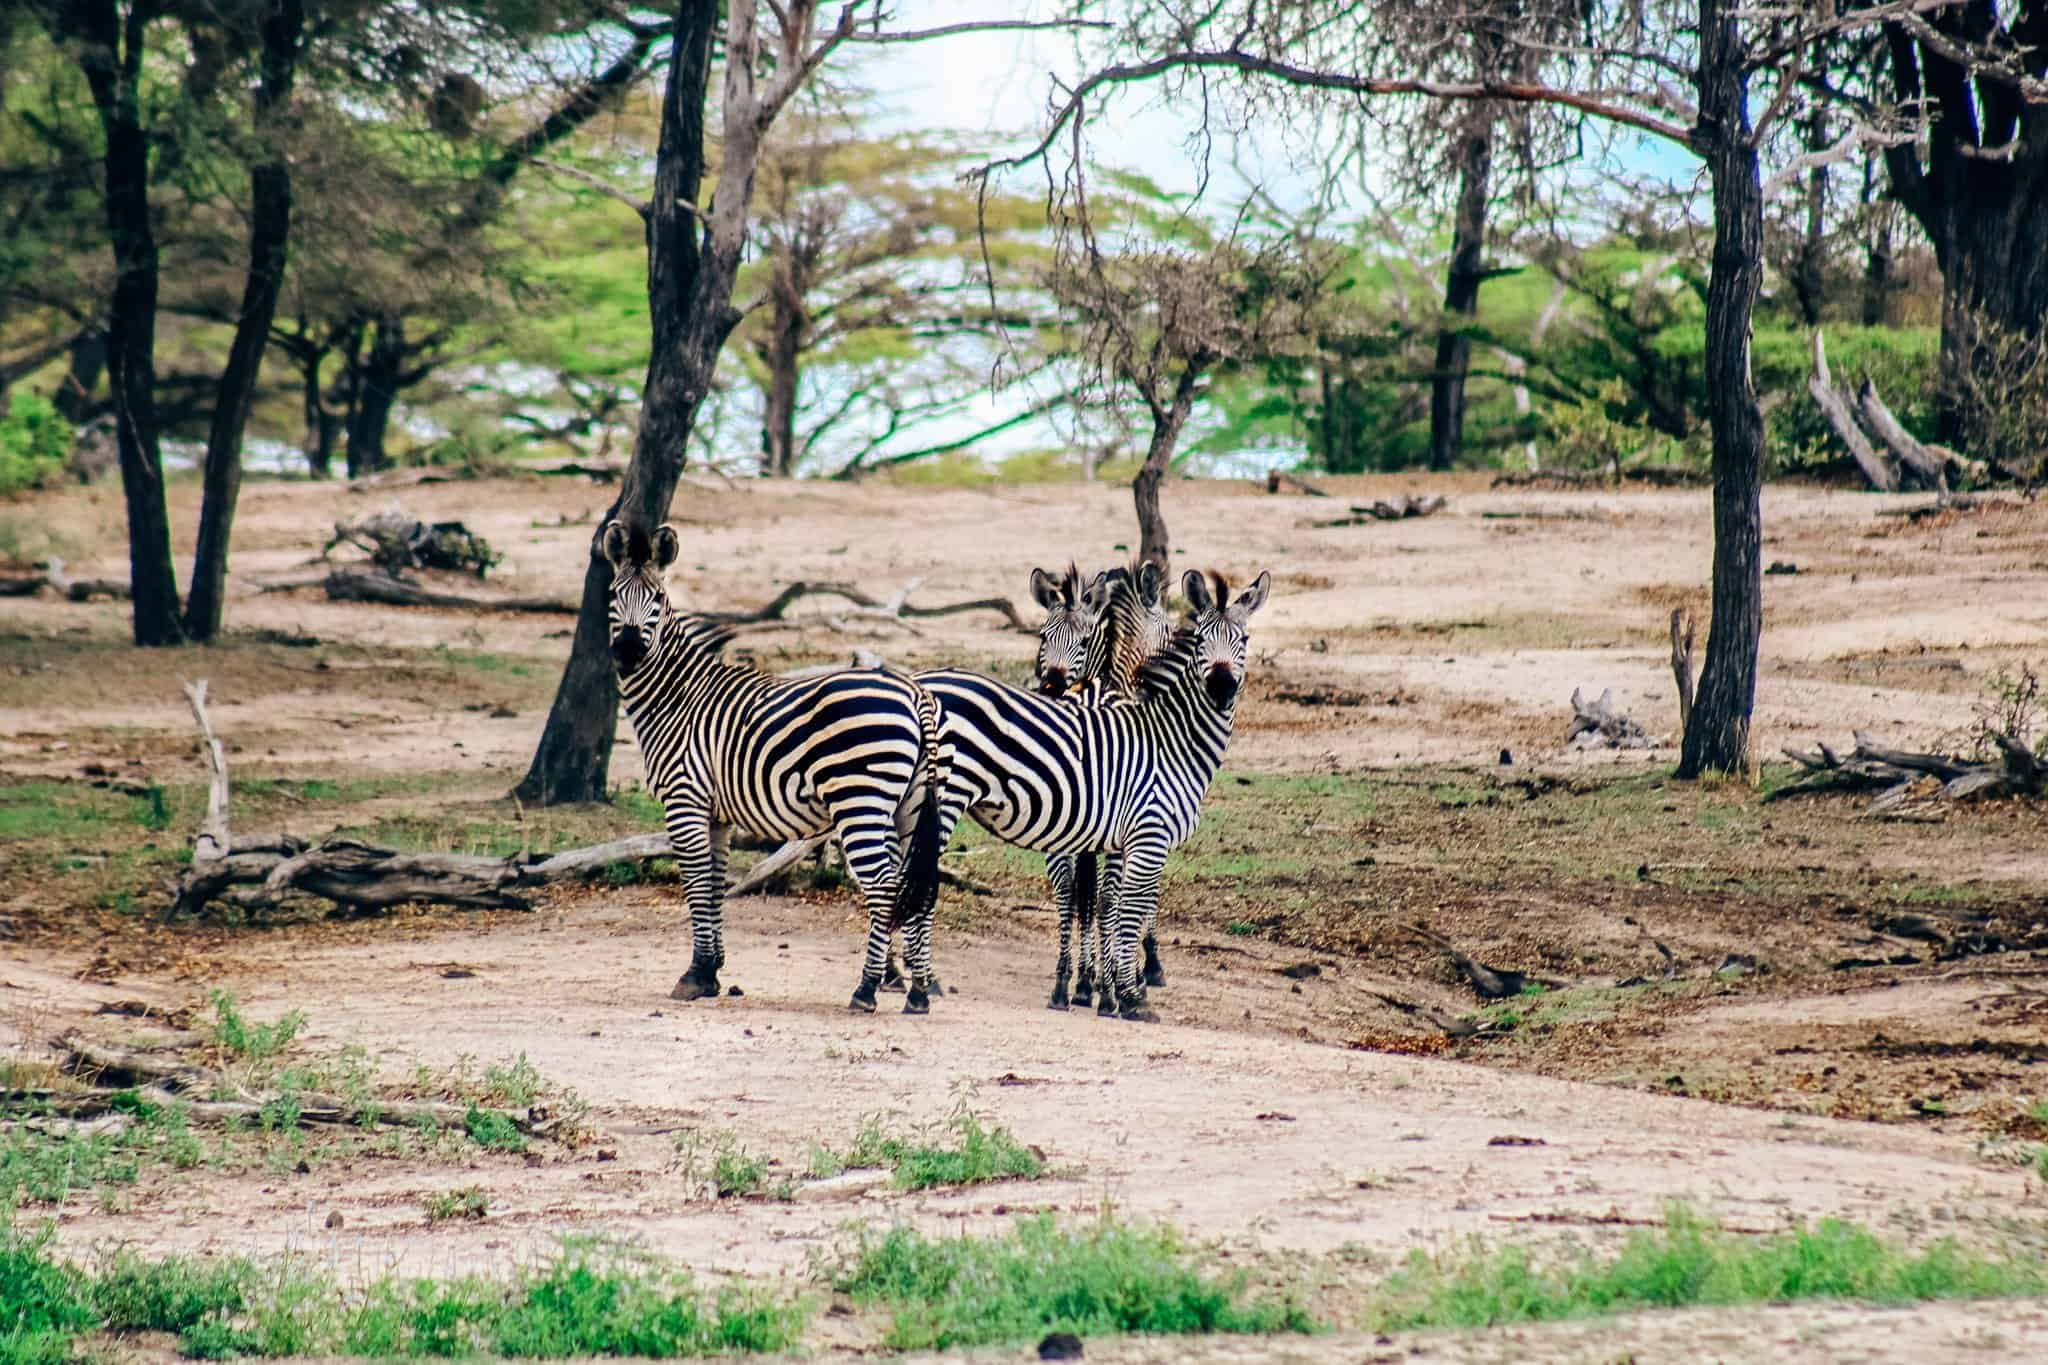 Zebras on African Safari Drive in the Selous Game Reserve